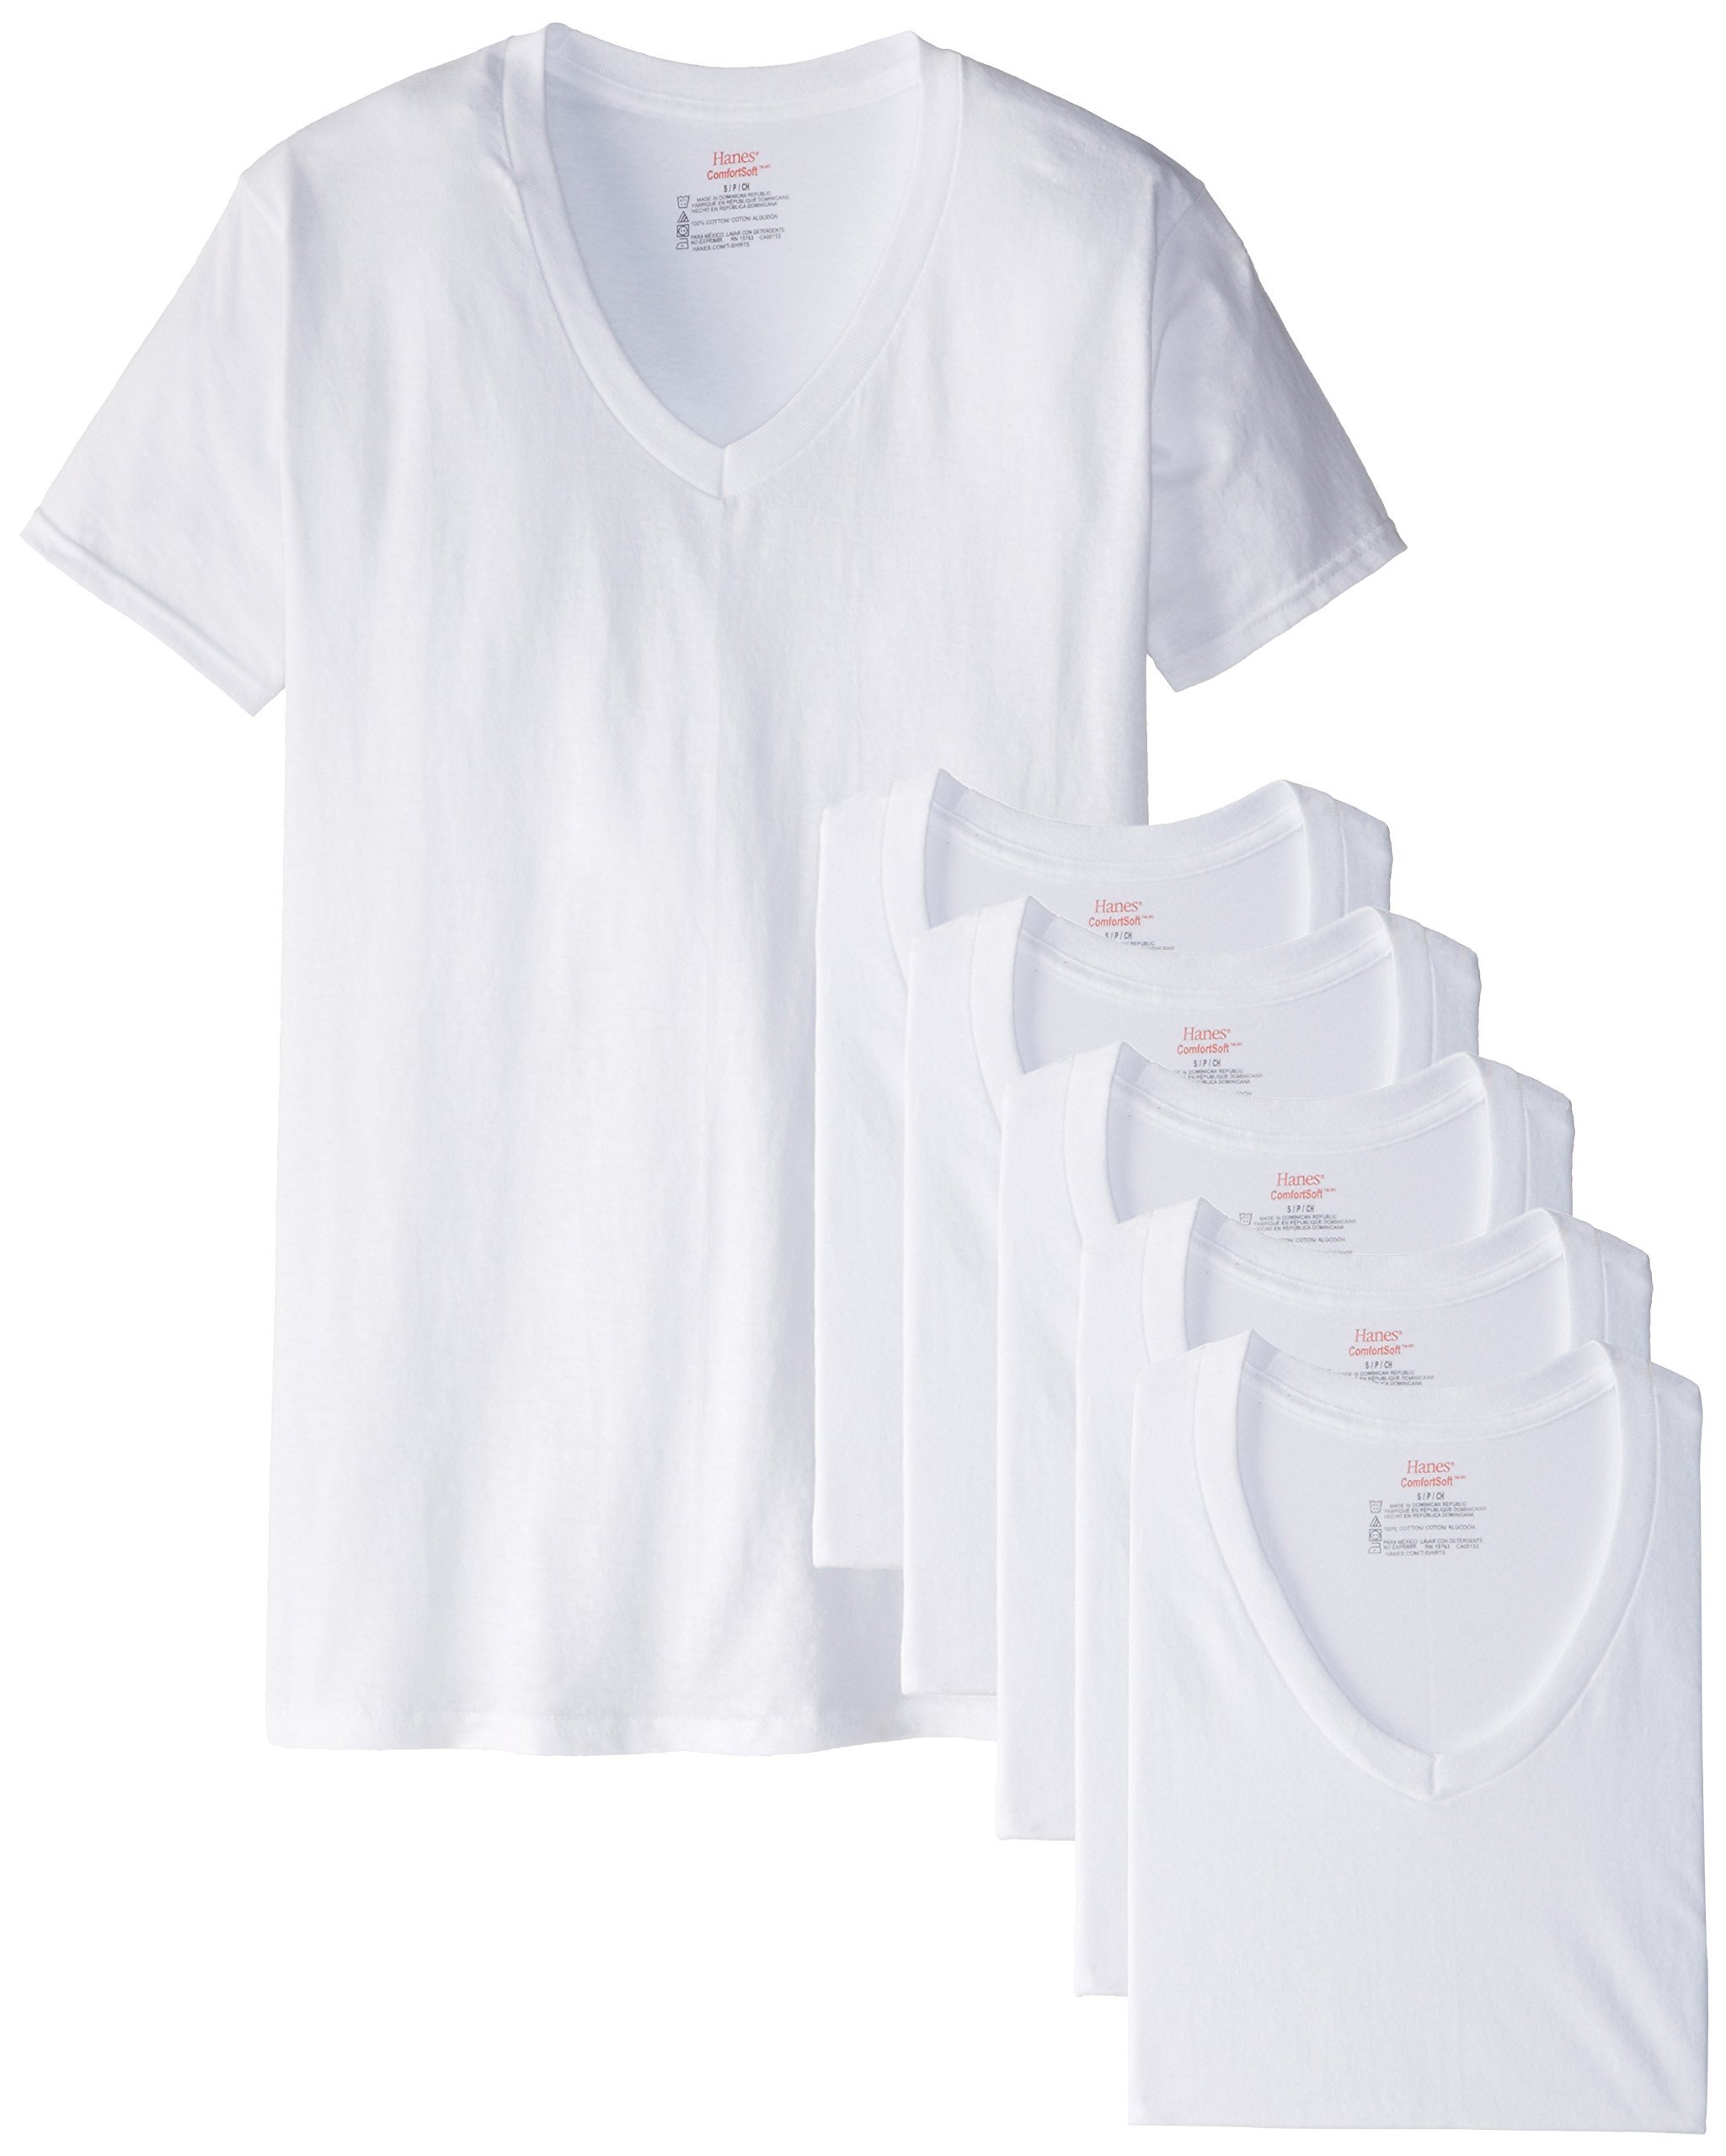 Hanes Men's 6 Pack FreshIQ V-Neck T-Shirt, White, Medium